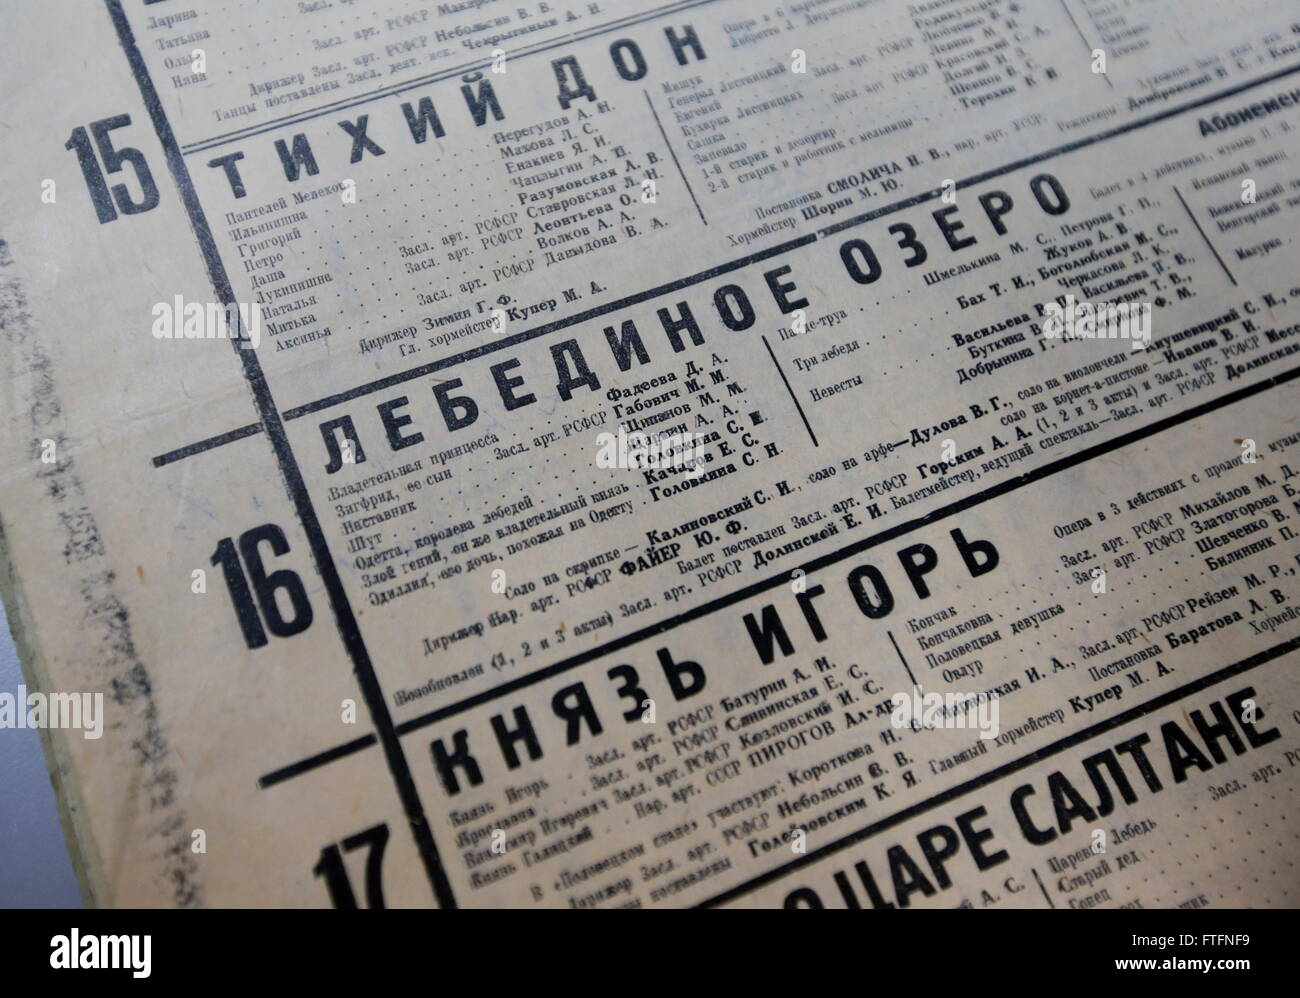 MOSCOW, RUSSIA. MARCH 23, 2016. An old Bolshoi Theatre programme in the repository of the Bolshoi Theatre. On 28 - Stock Image